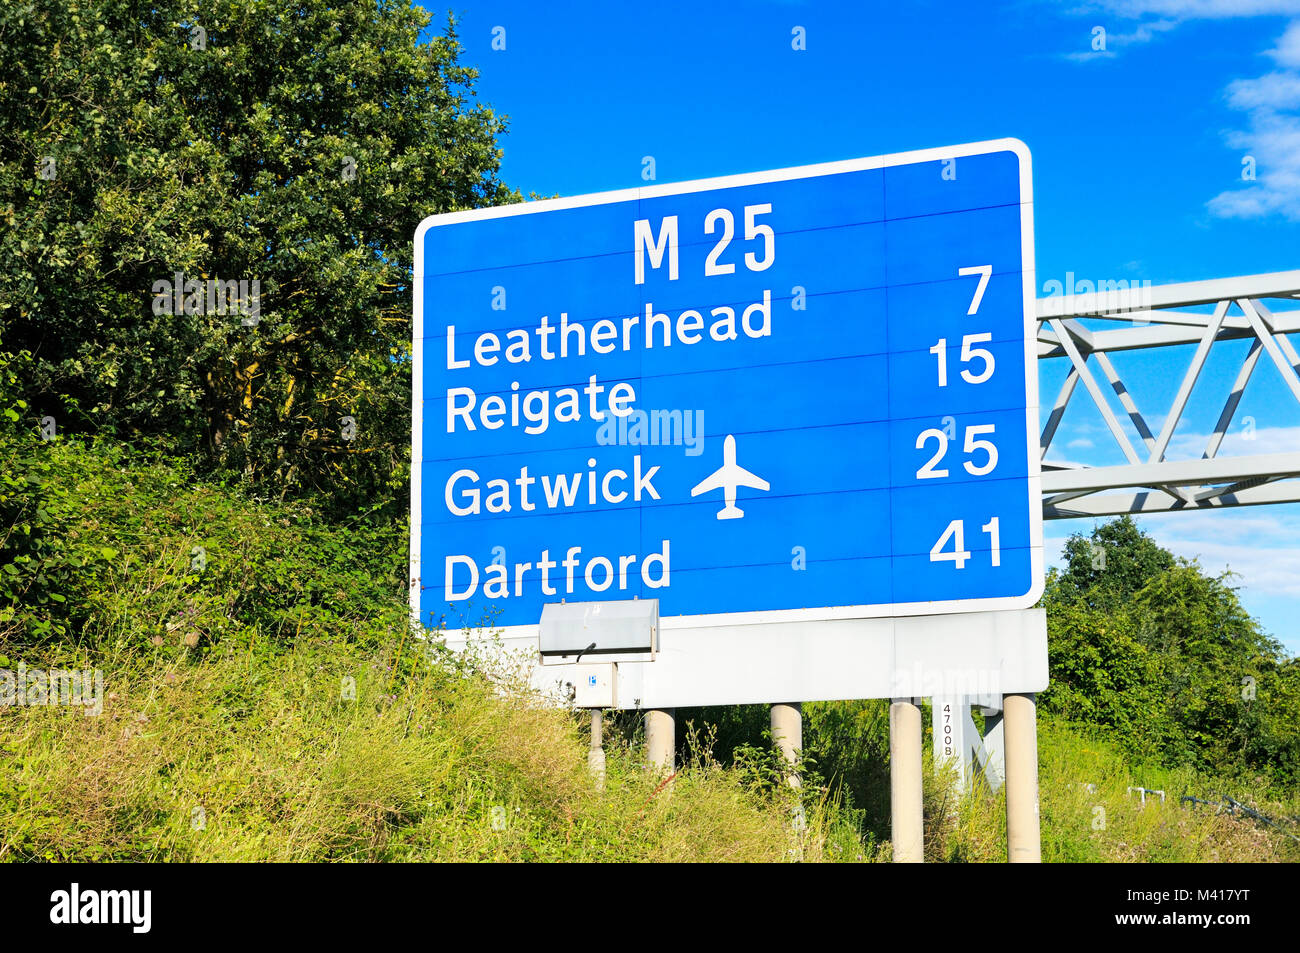 M25 motorway sign around Junction 10 showing distances to Leatherhead, Reigate, Gatwick and Dartford - Stock Image